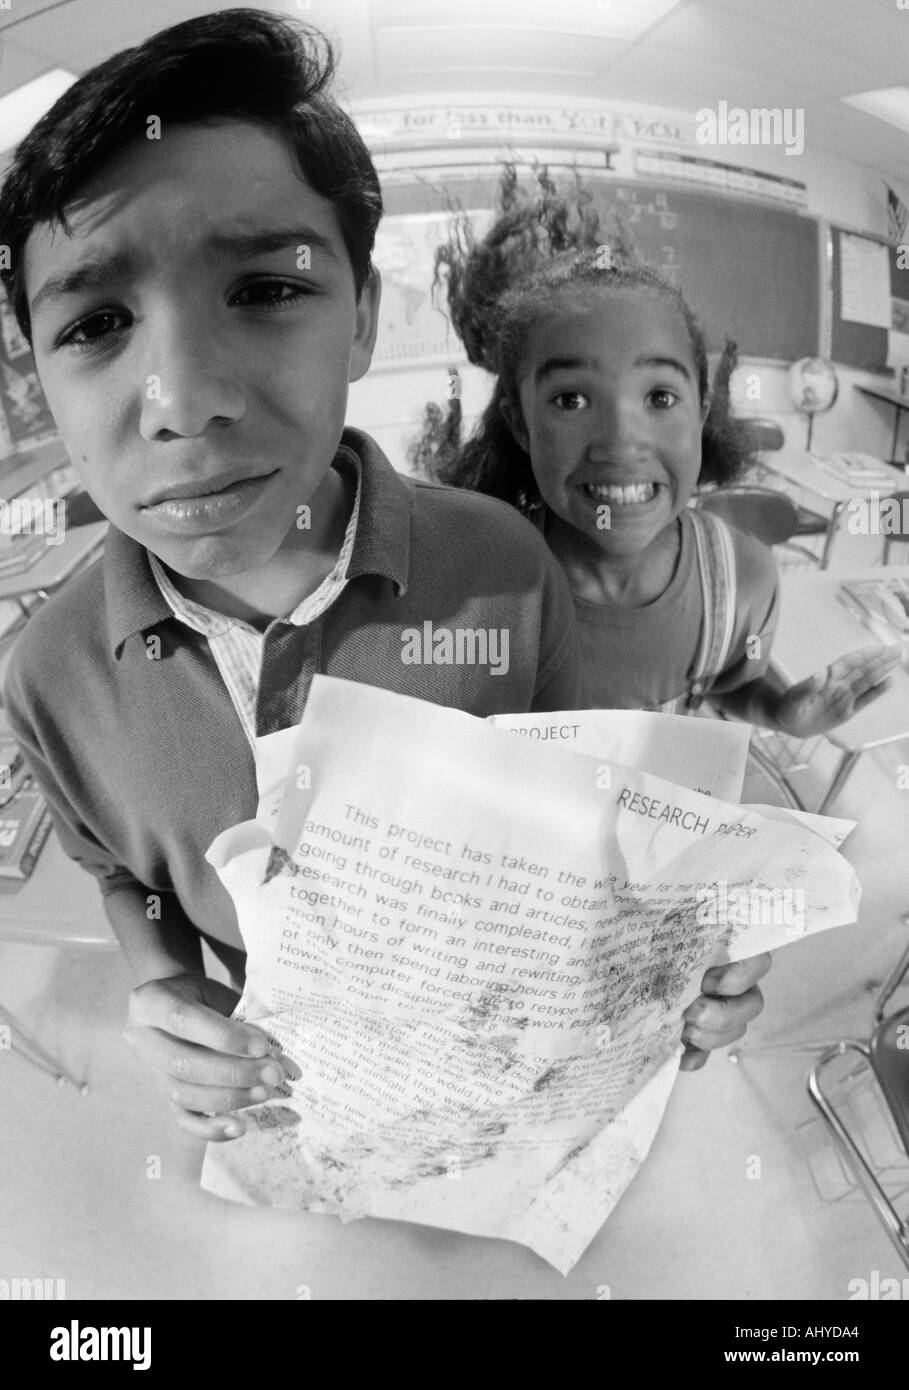 Two Latino middle school students with messy homework papers Using the excuse 'the dog ate my homework' - Stock Image